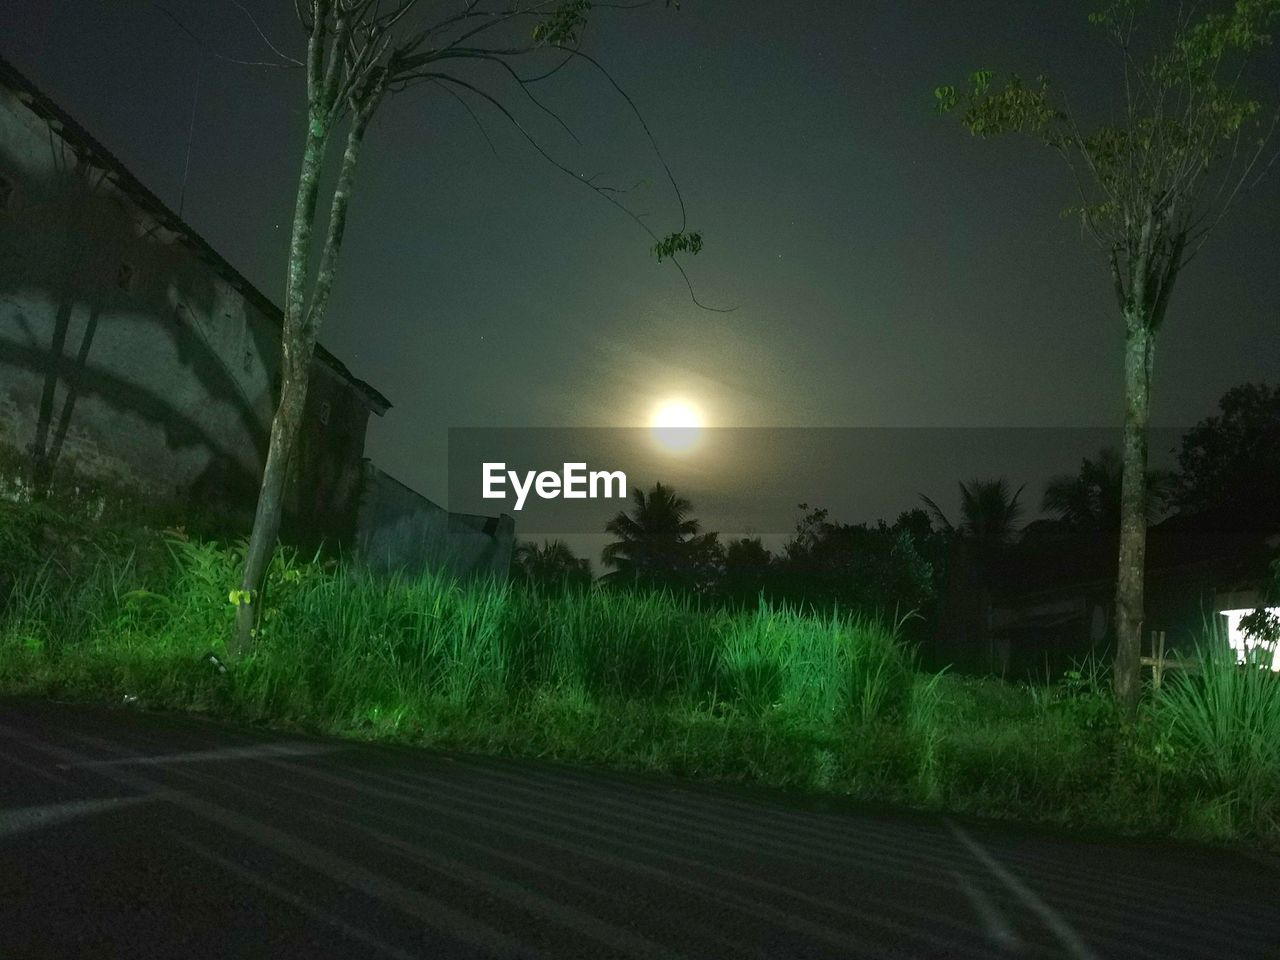 night, moon, tree, nature, grass, no people, beauty in nature, scenics, outdoors, plant, tranquility, illuminated, tranquil scene, growth, the way forward, field, sky, road, landscape